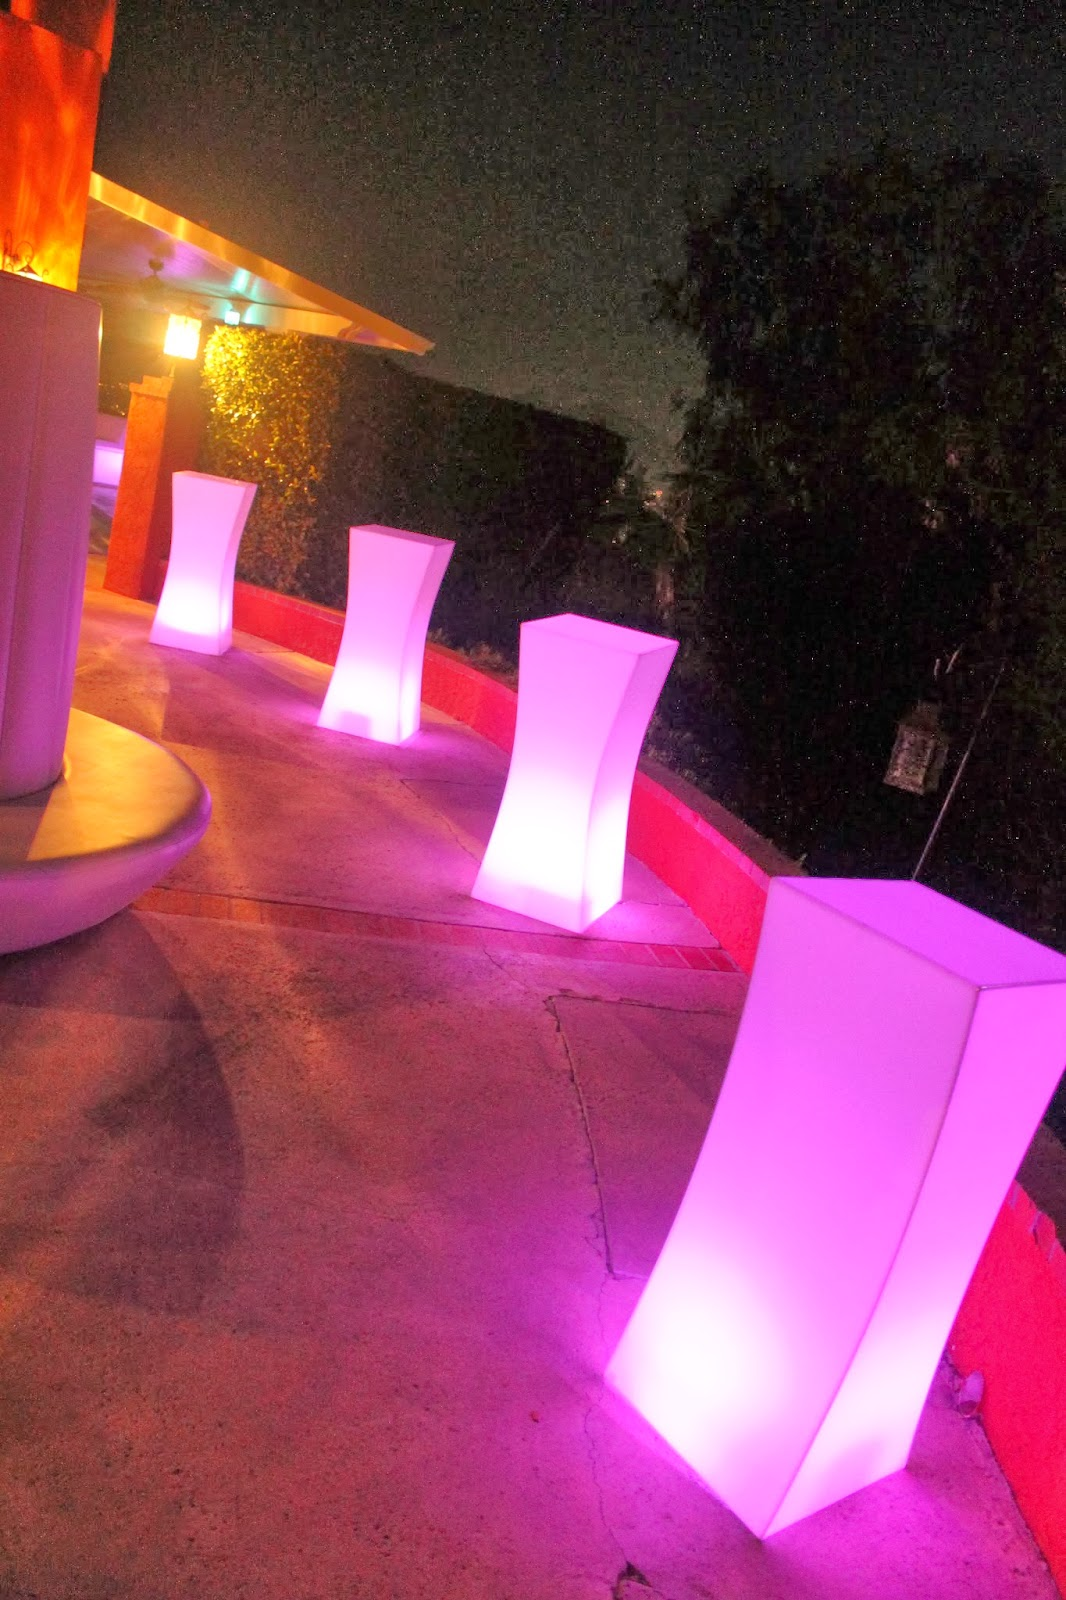 New Light Of Myanmar Daily Journal: Orange County Party Rentals: New LED Light Furniture